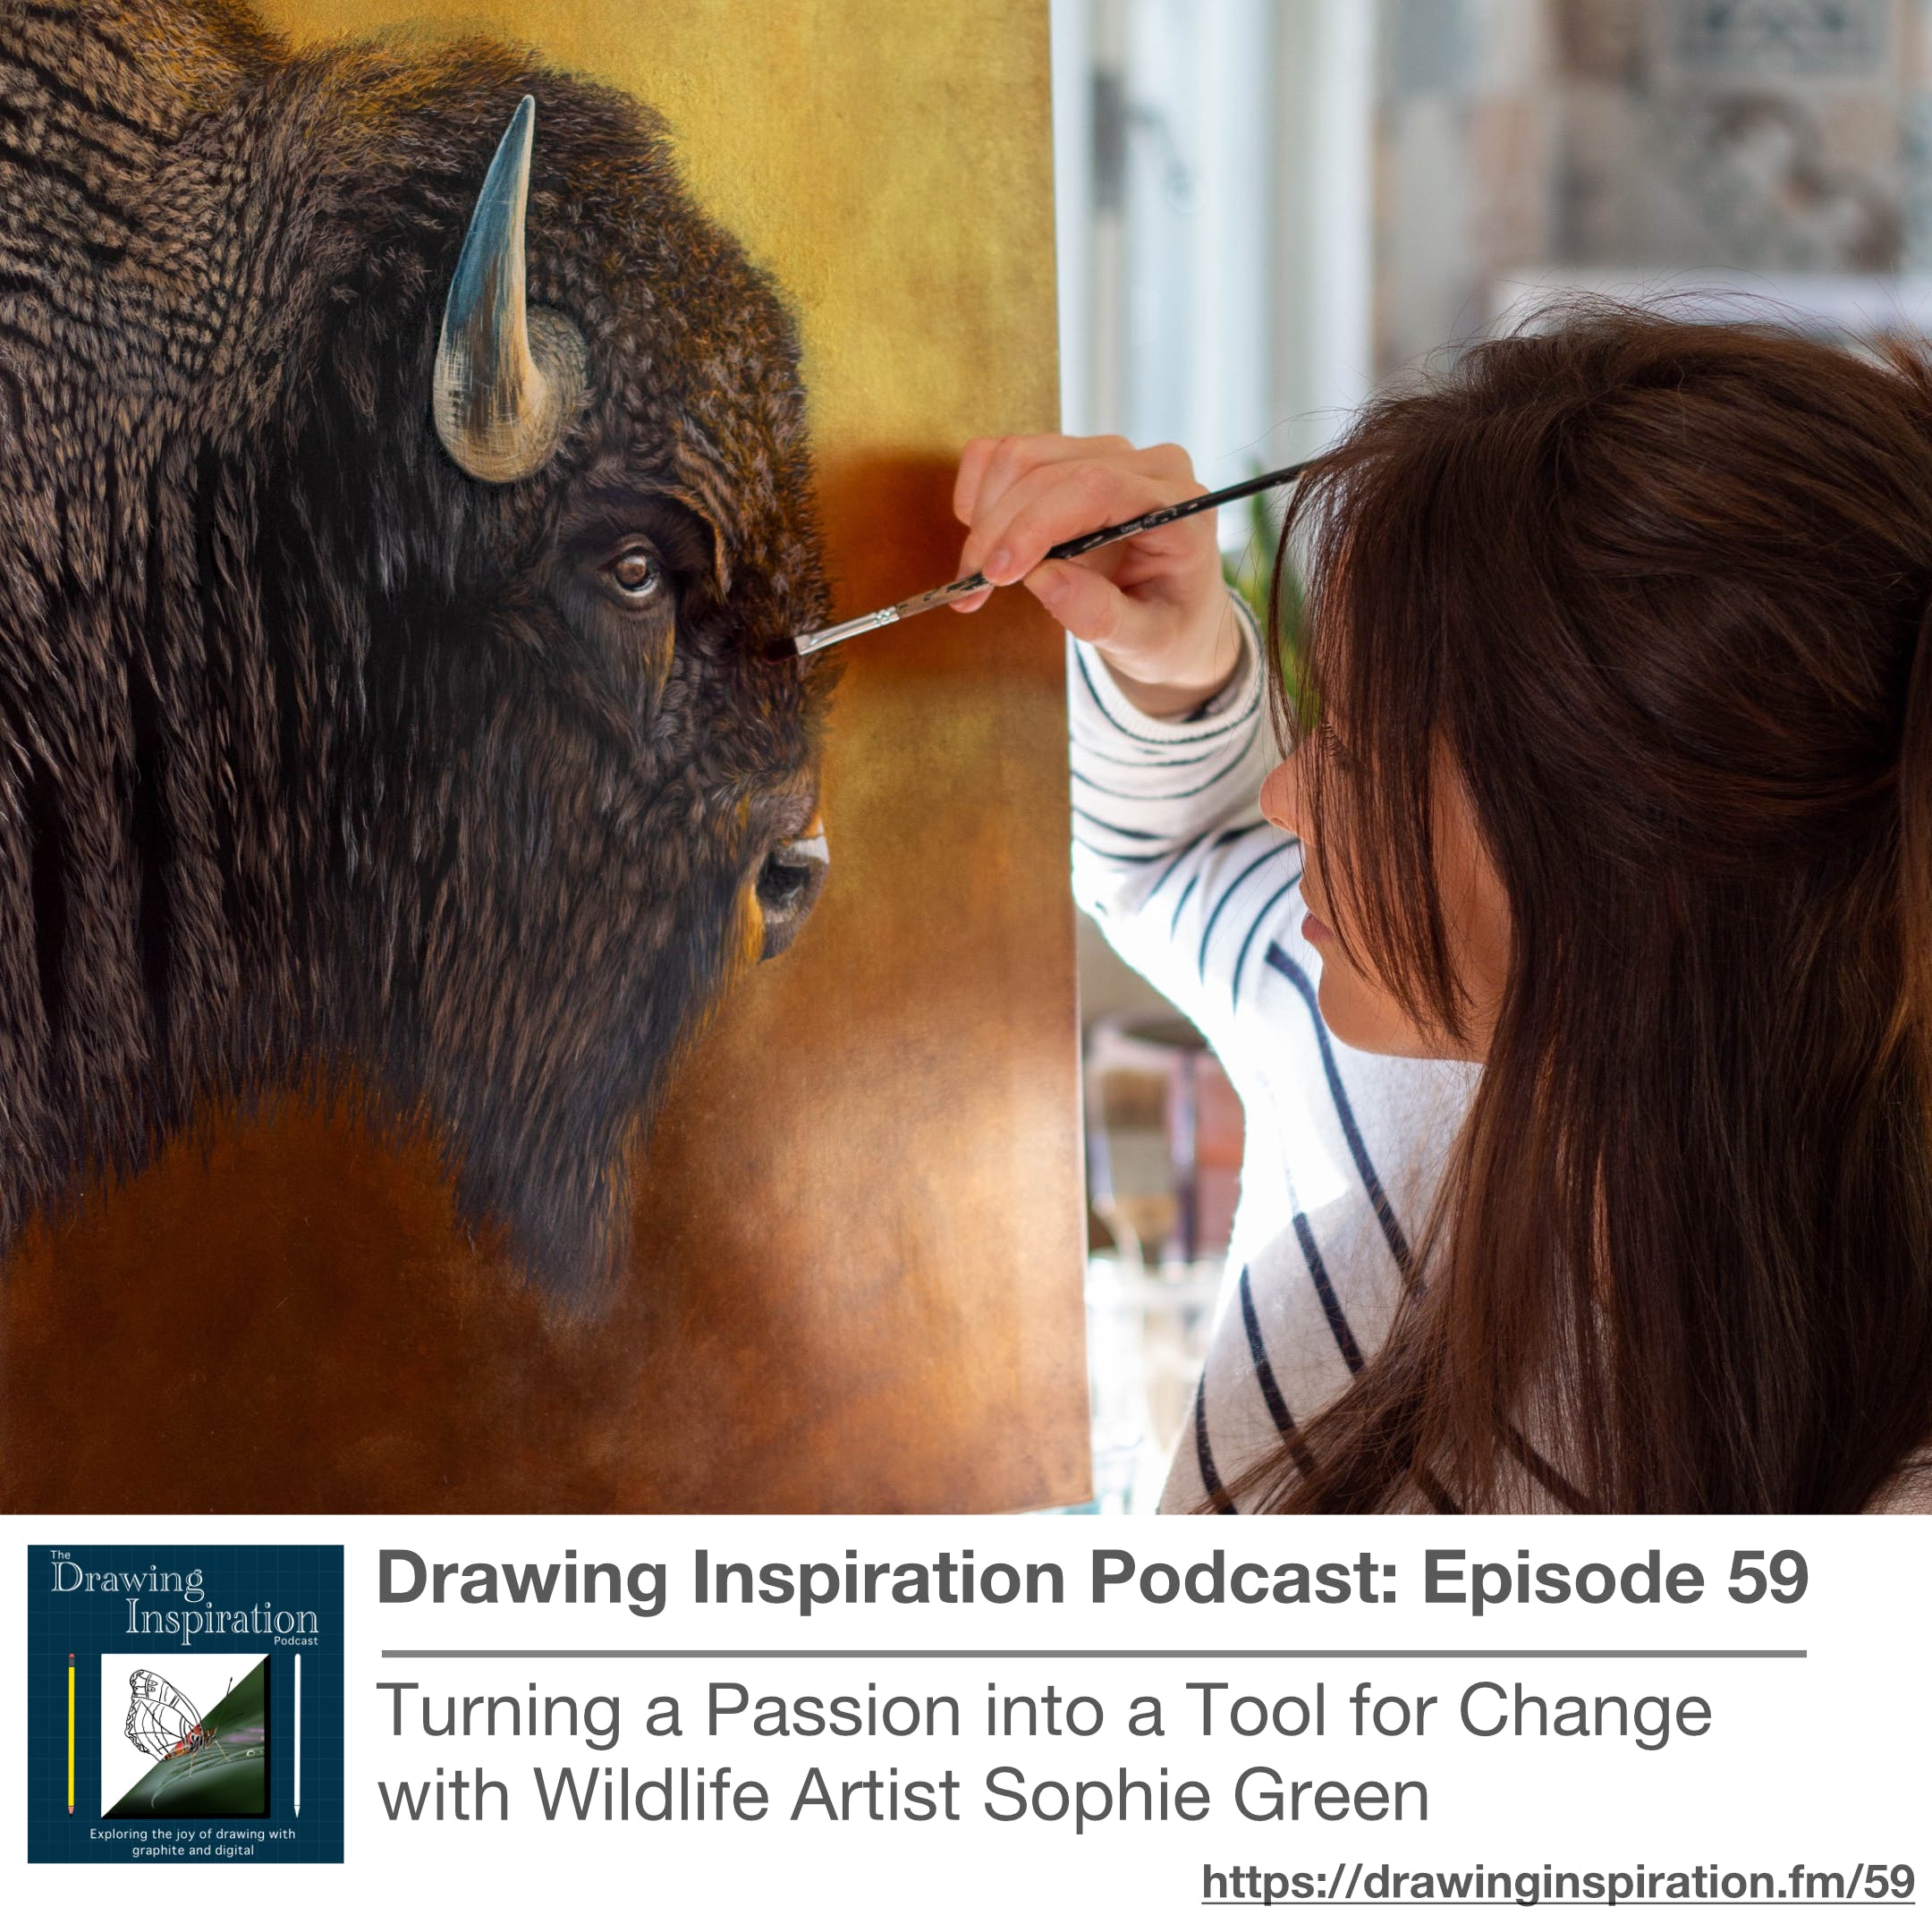 59: Turning a Passion into a Tool for Change with Wildlife Artist Sophie Green